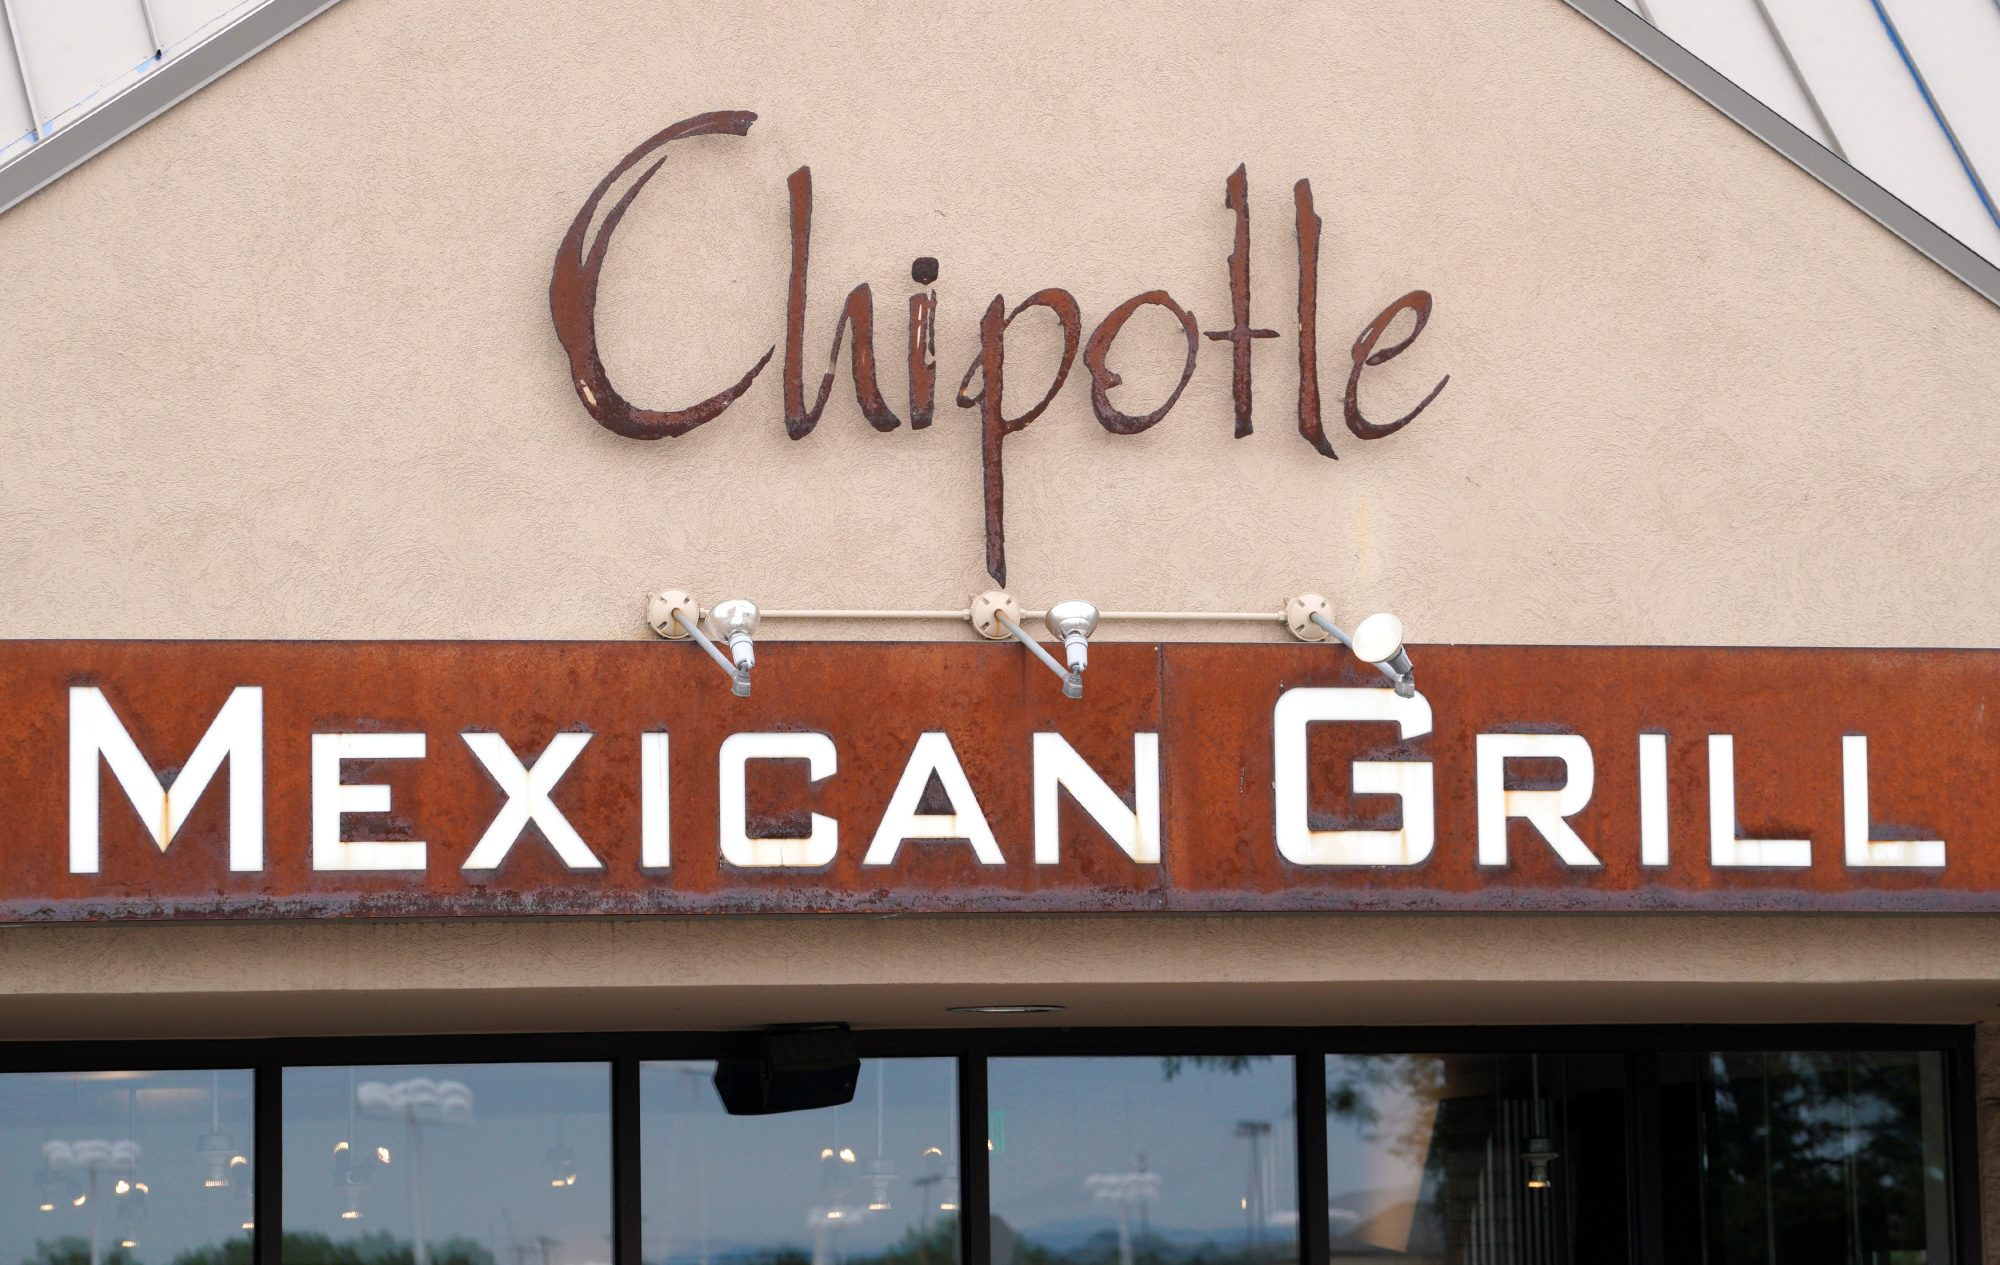 The logo of a Chipotle restaurant is seen in Golden, Colorado